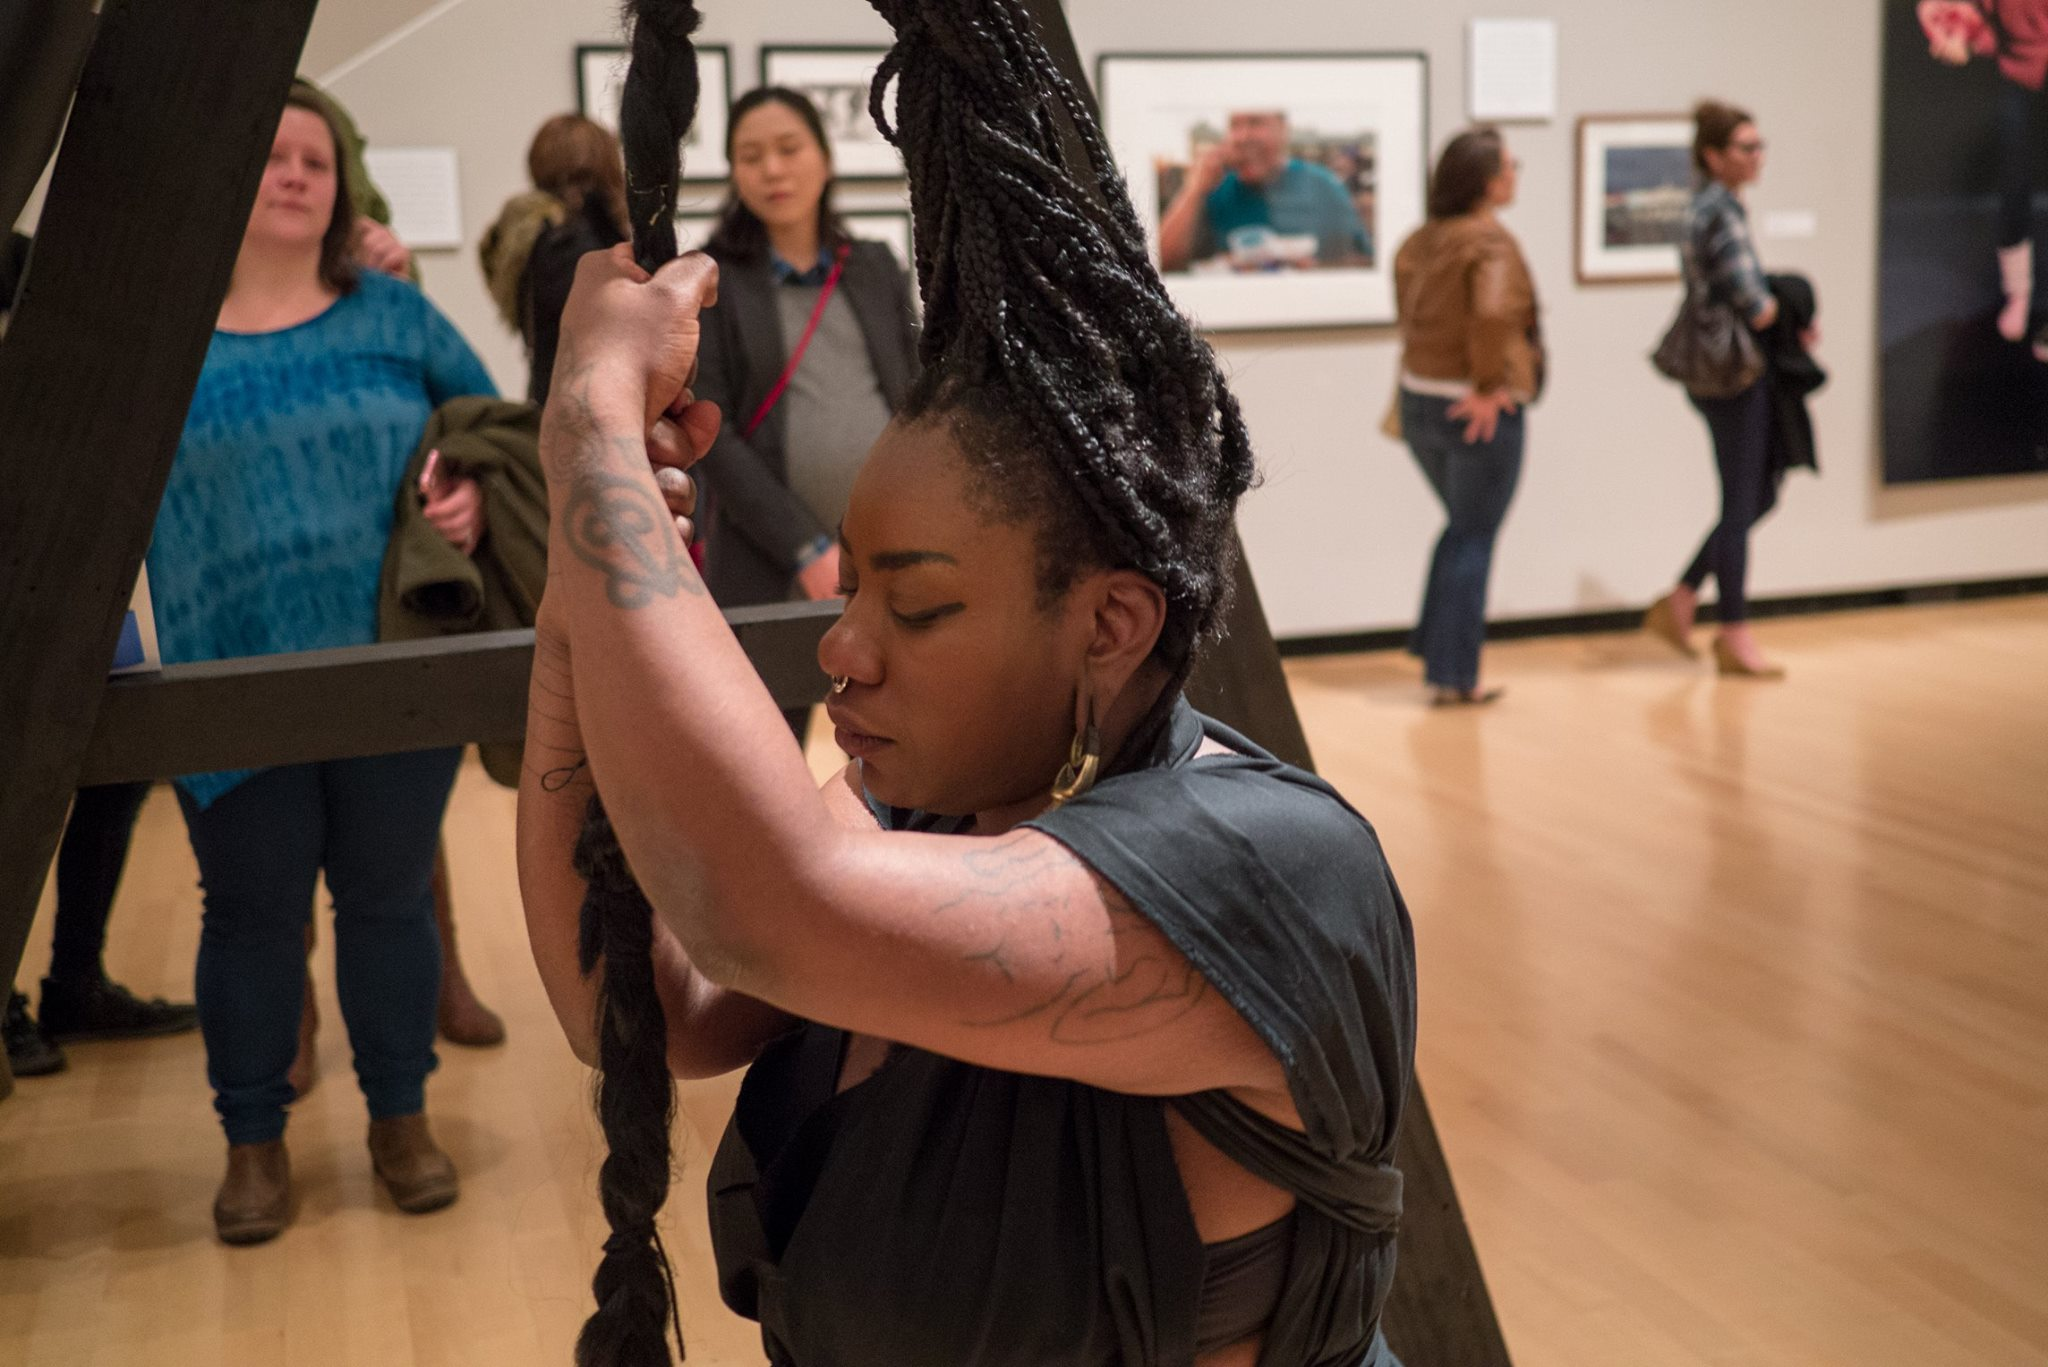 Dana McKnight performed her piece 'Trussed' on Dec. 9 in the Burchfield Penney Art Center. (Photo by Derek Neuland.)